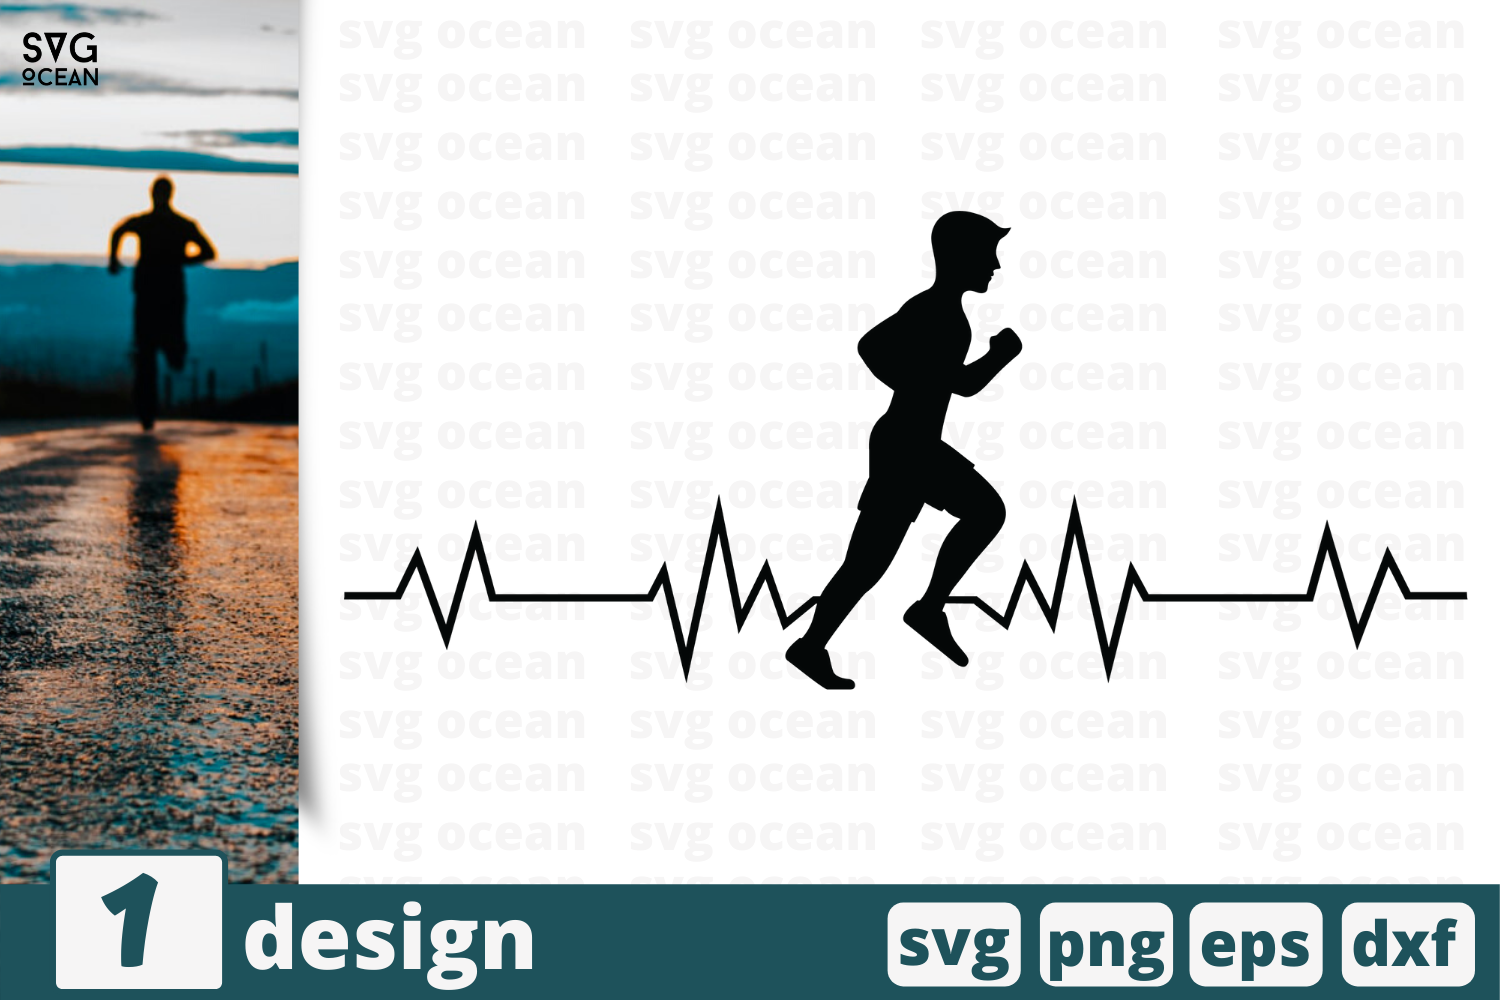 Download Free Heart Beat Runner Graphic By Svgocean Creative Fabrica for Cricut Explore, Silhouette and other cutting machines.